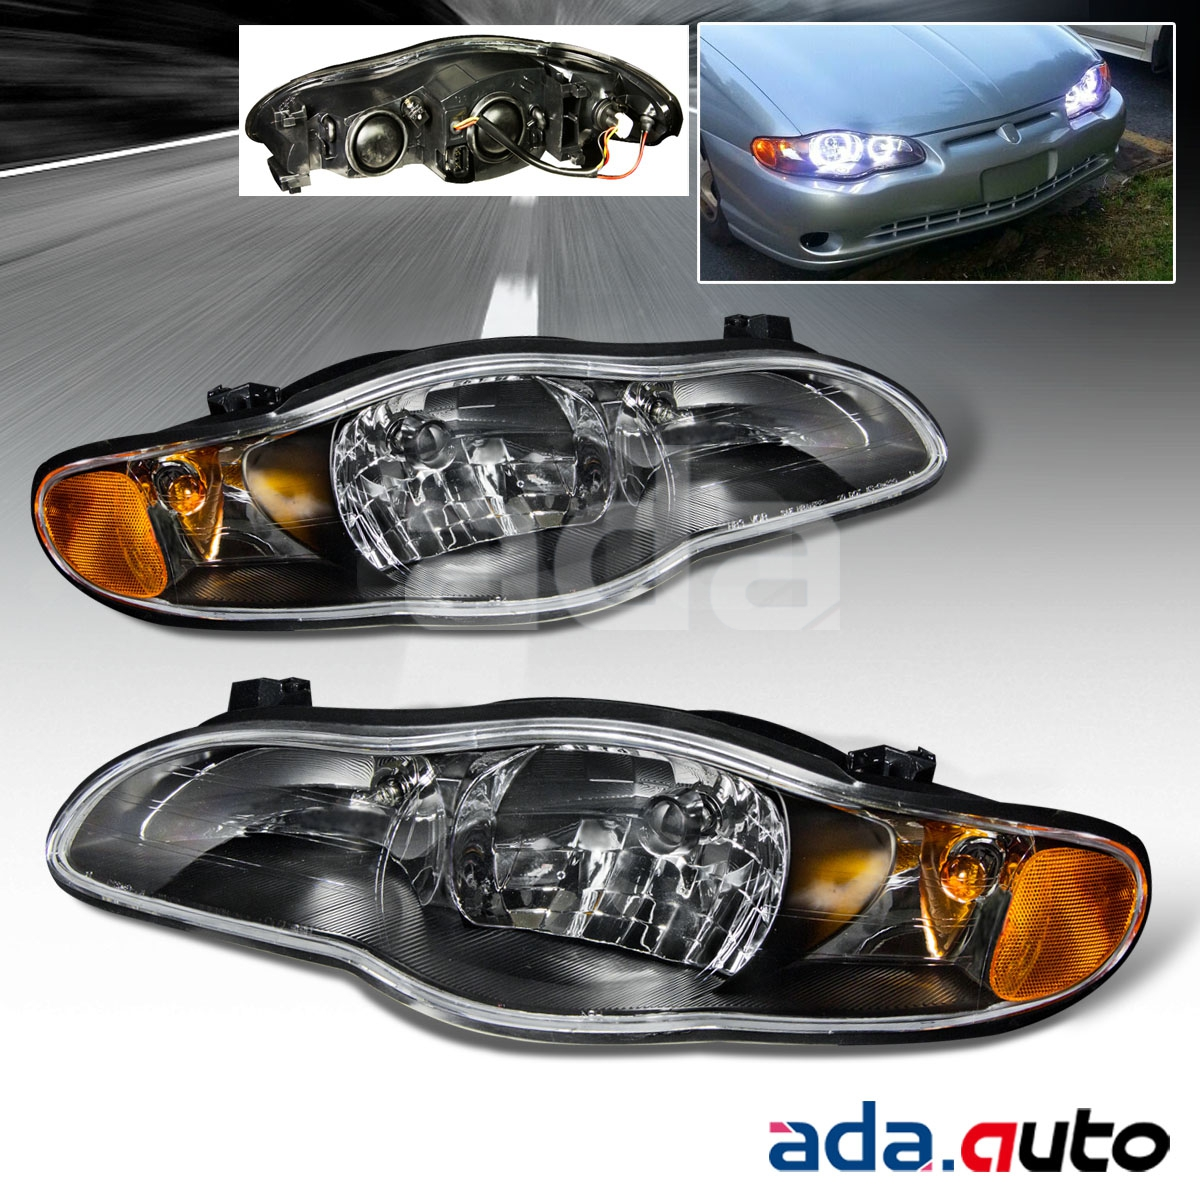 For 2000-2005 Chevy Monte Carlo/SS Black Headlights